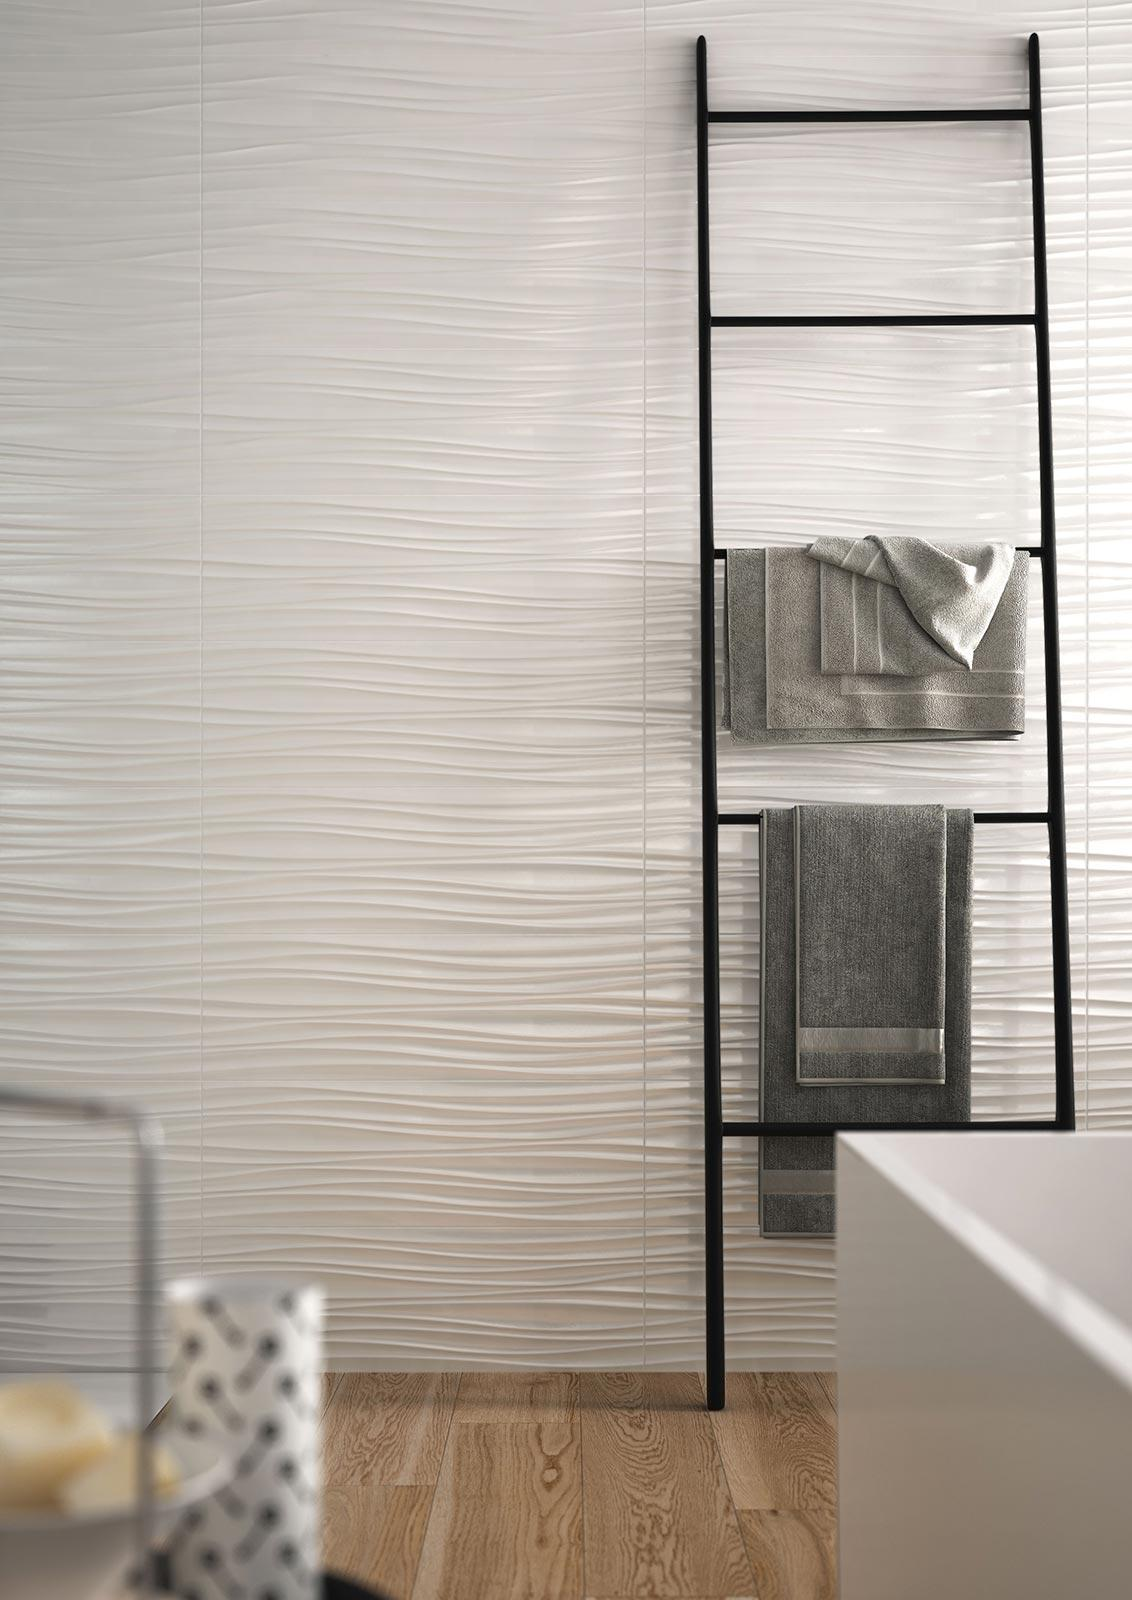 Bathroom wall with textured tiles recalling the wavy shape of sand moved by the wind.